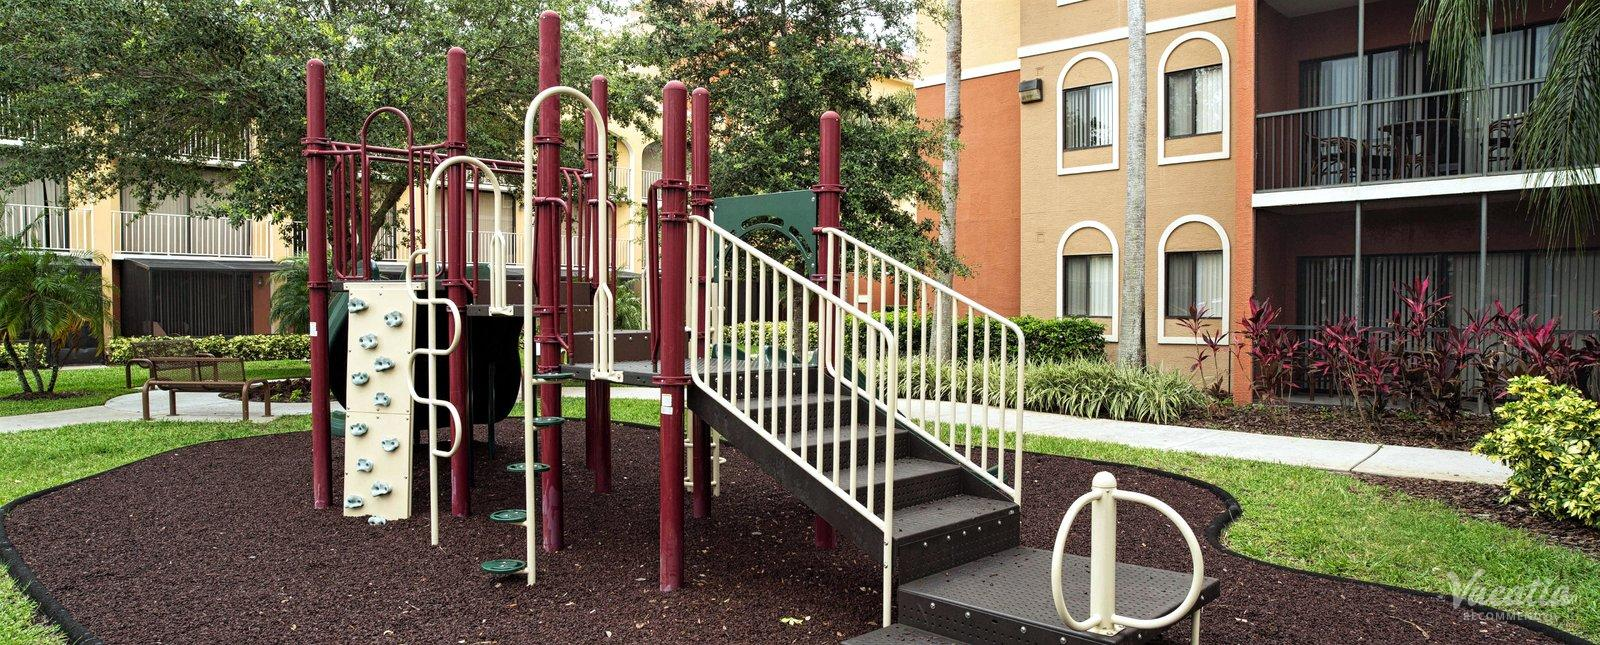 Westgate Towers Kids Playground